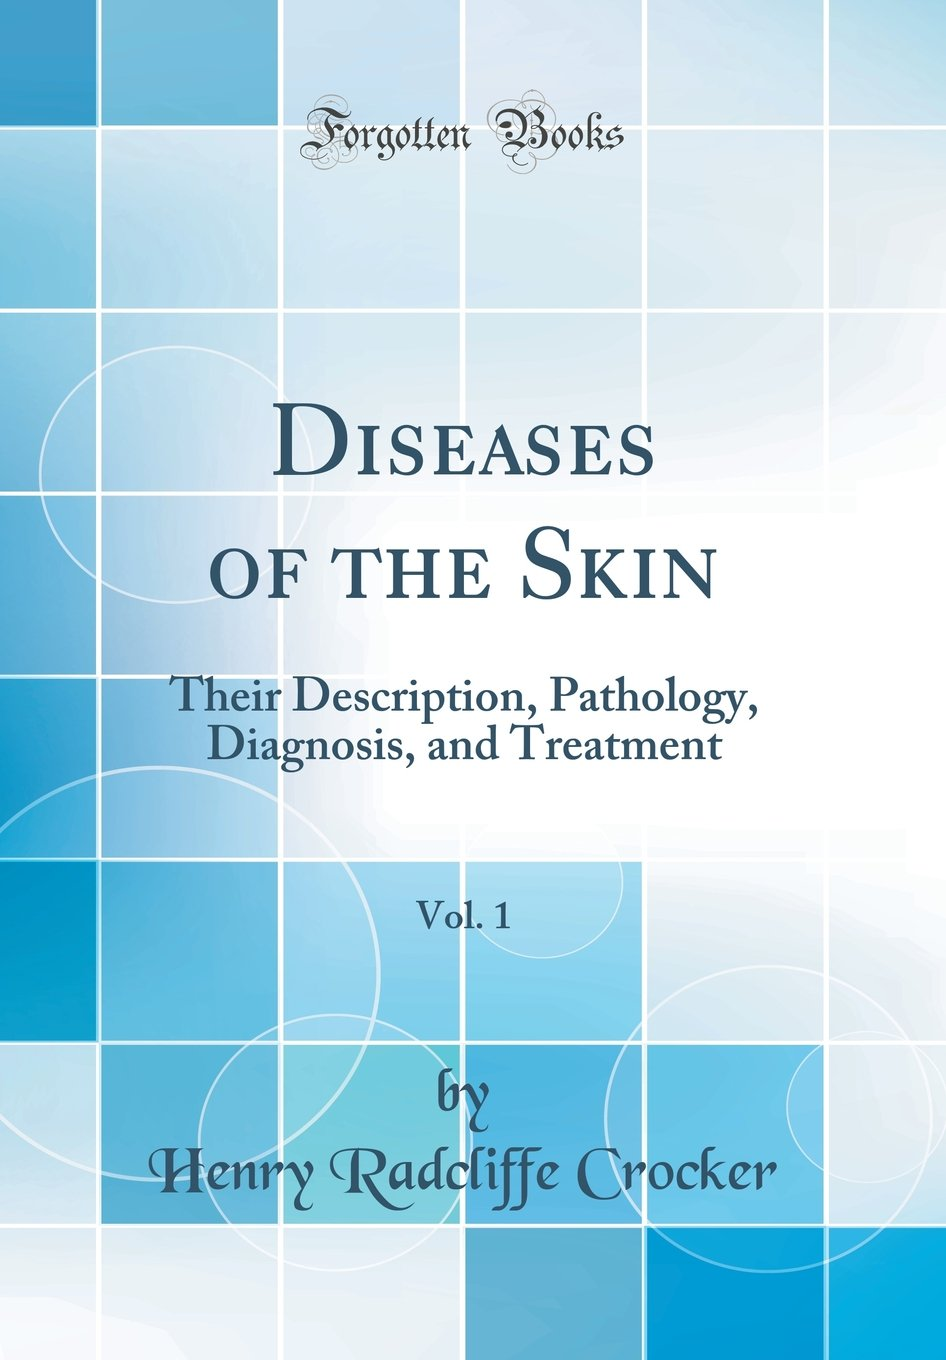 Diseases of the Skin, Vol. 1: Their Description, Pathology, Diagnosis, and Treatment (Classic Reprint) PDF